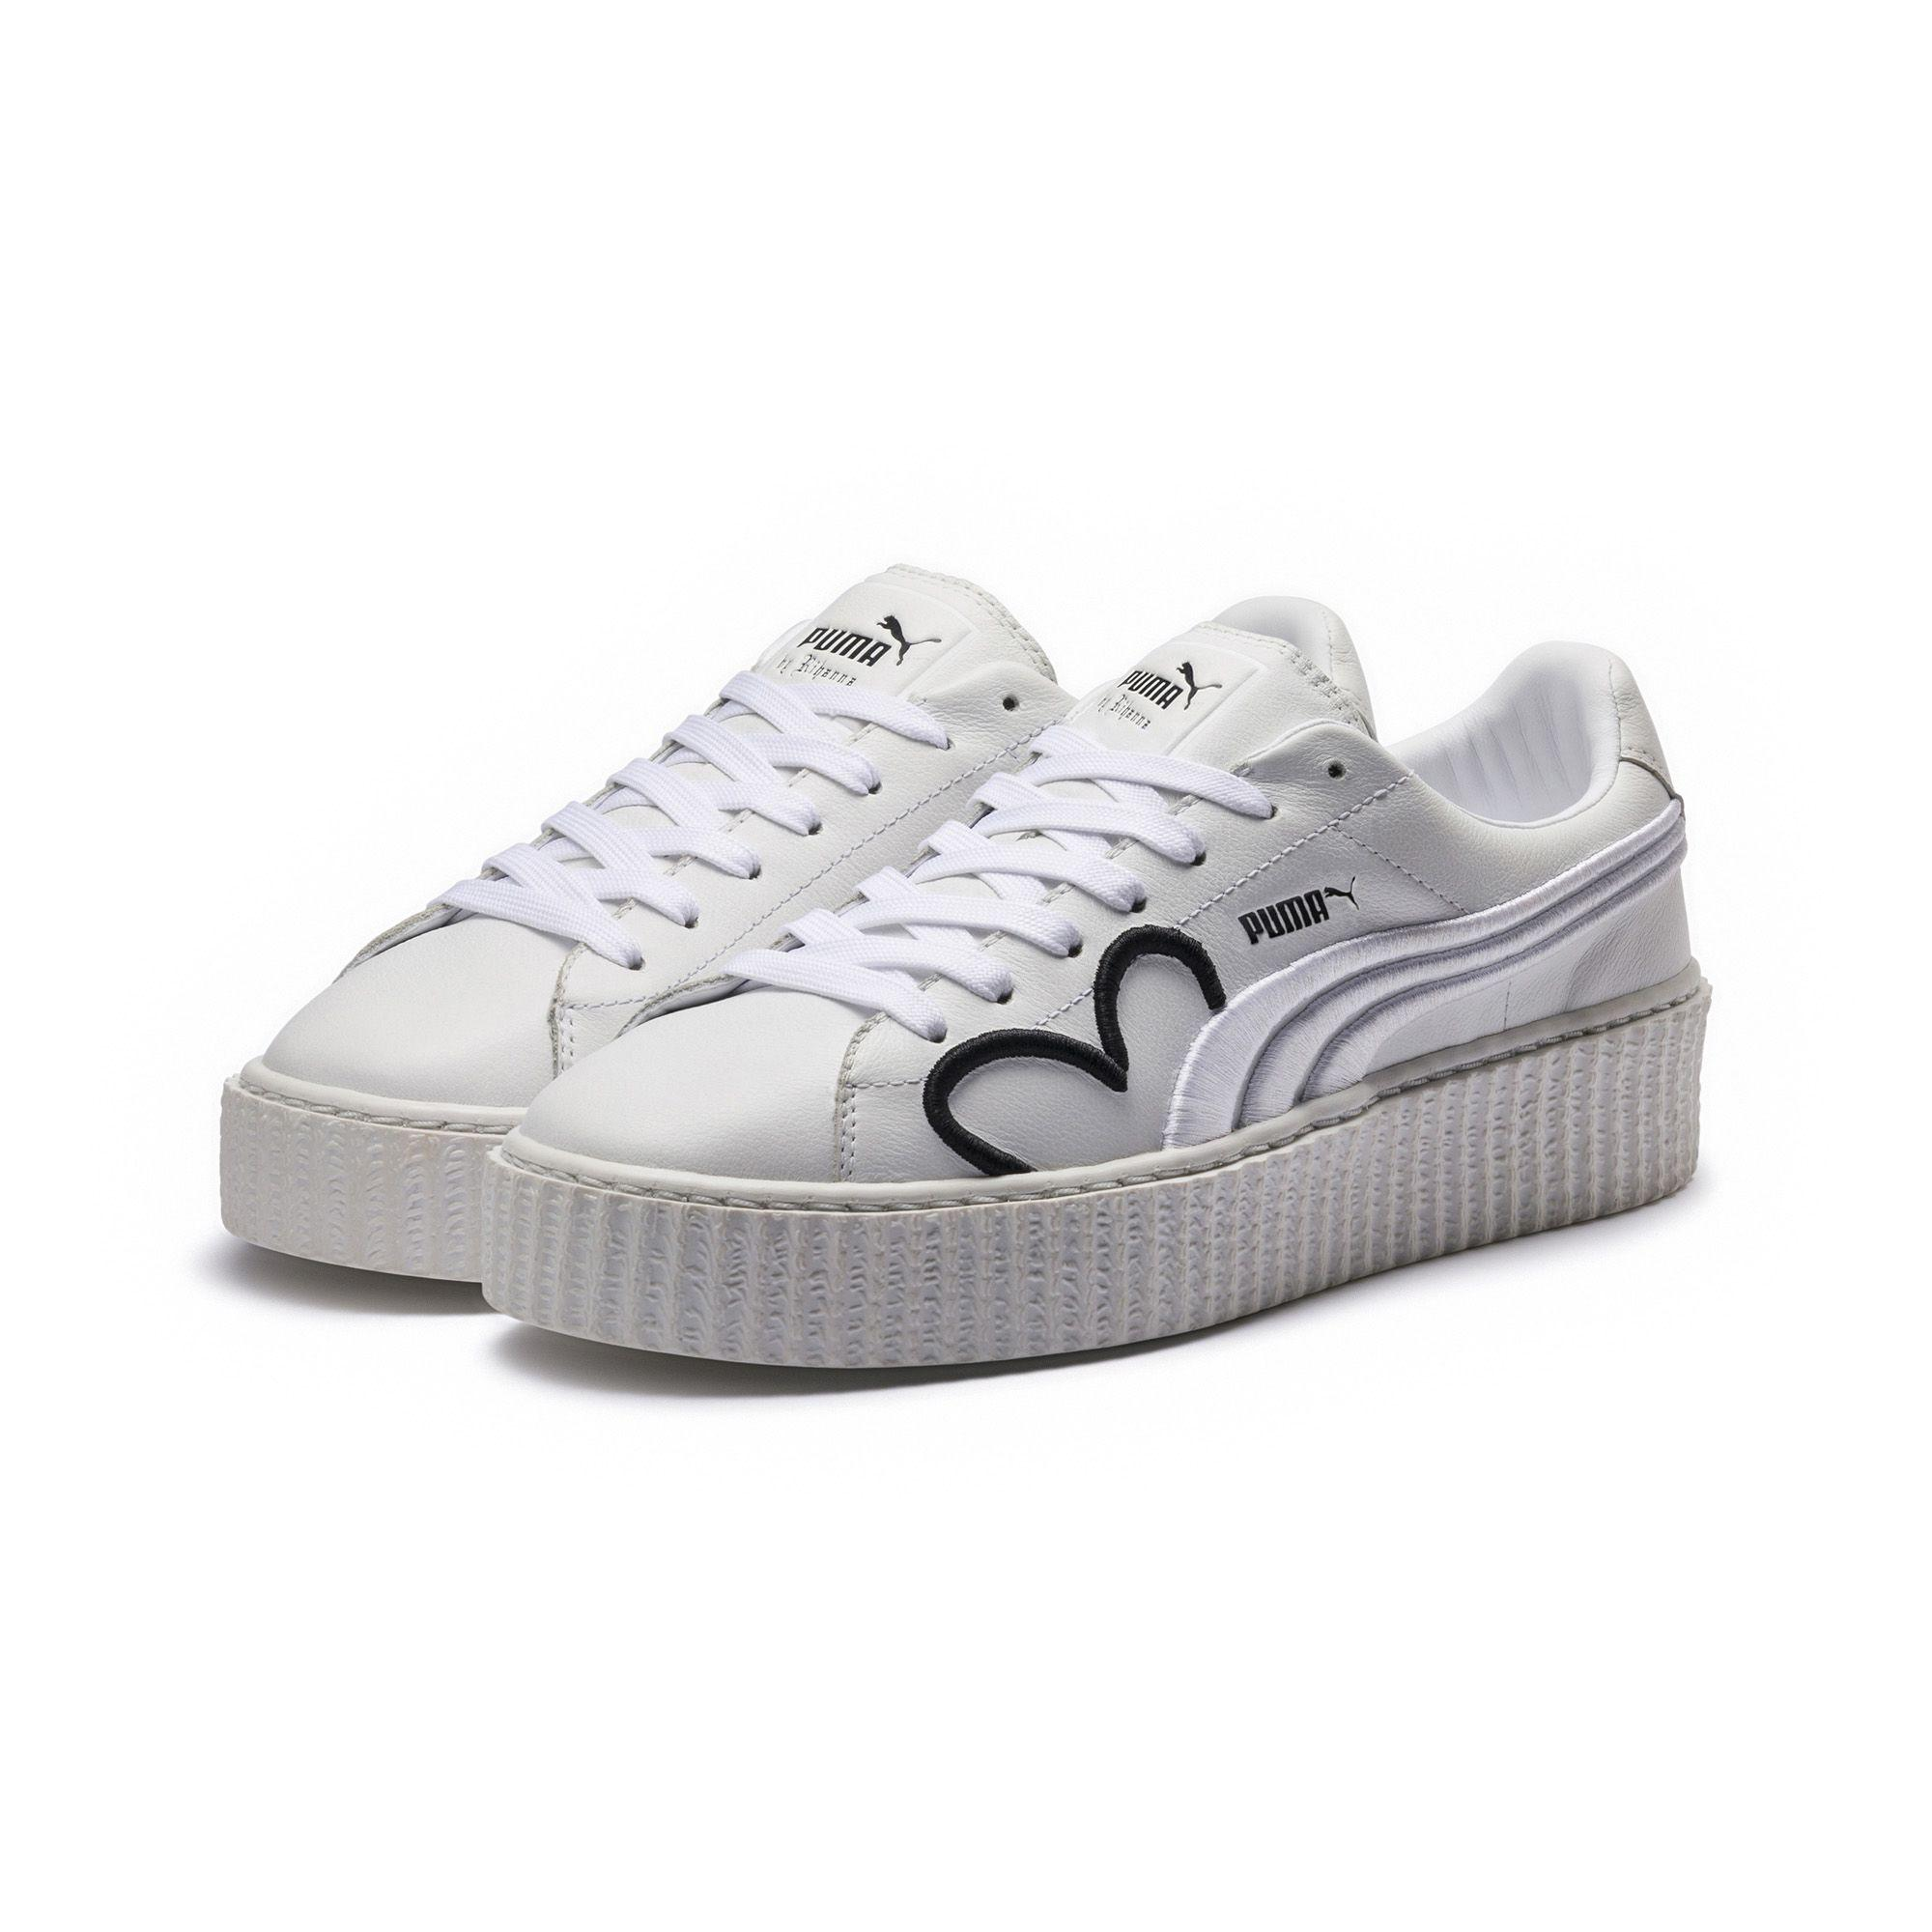 the best attitude 0cf35 39f03 White Fenty Clara Lionel Women's Creeper